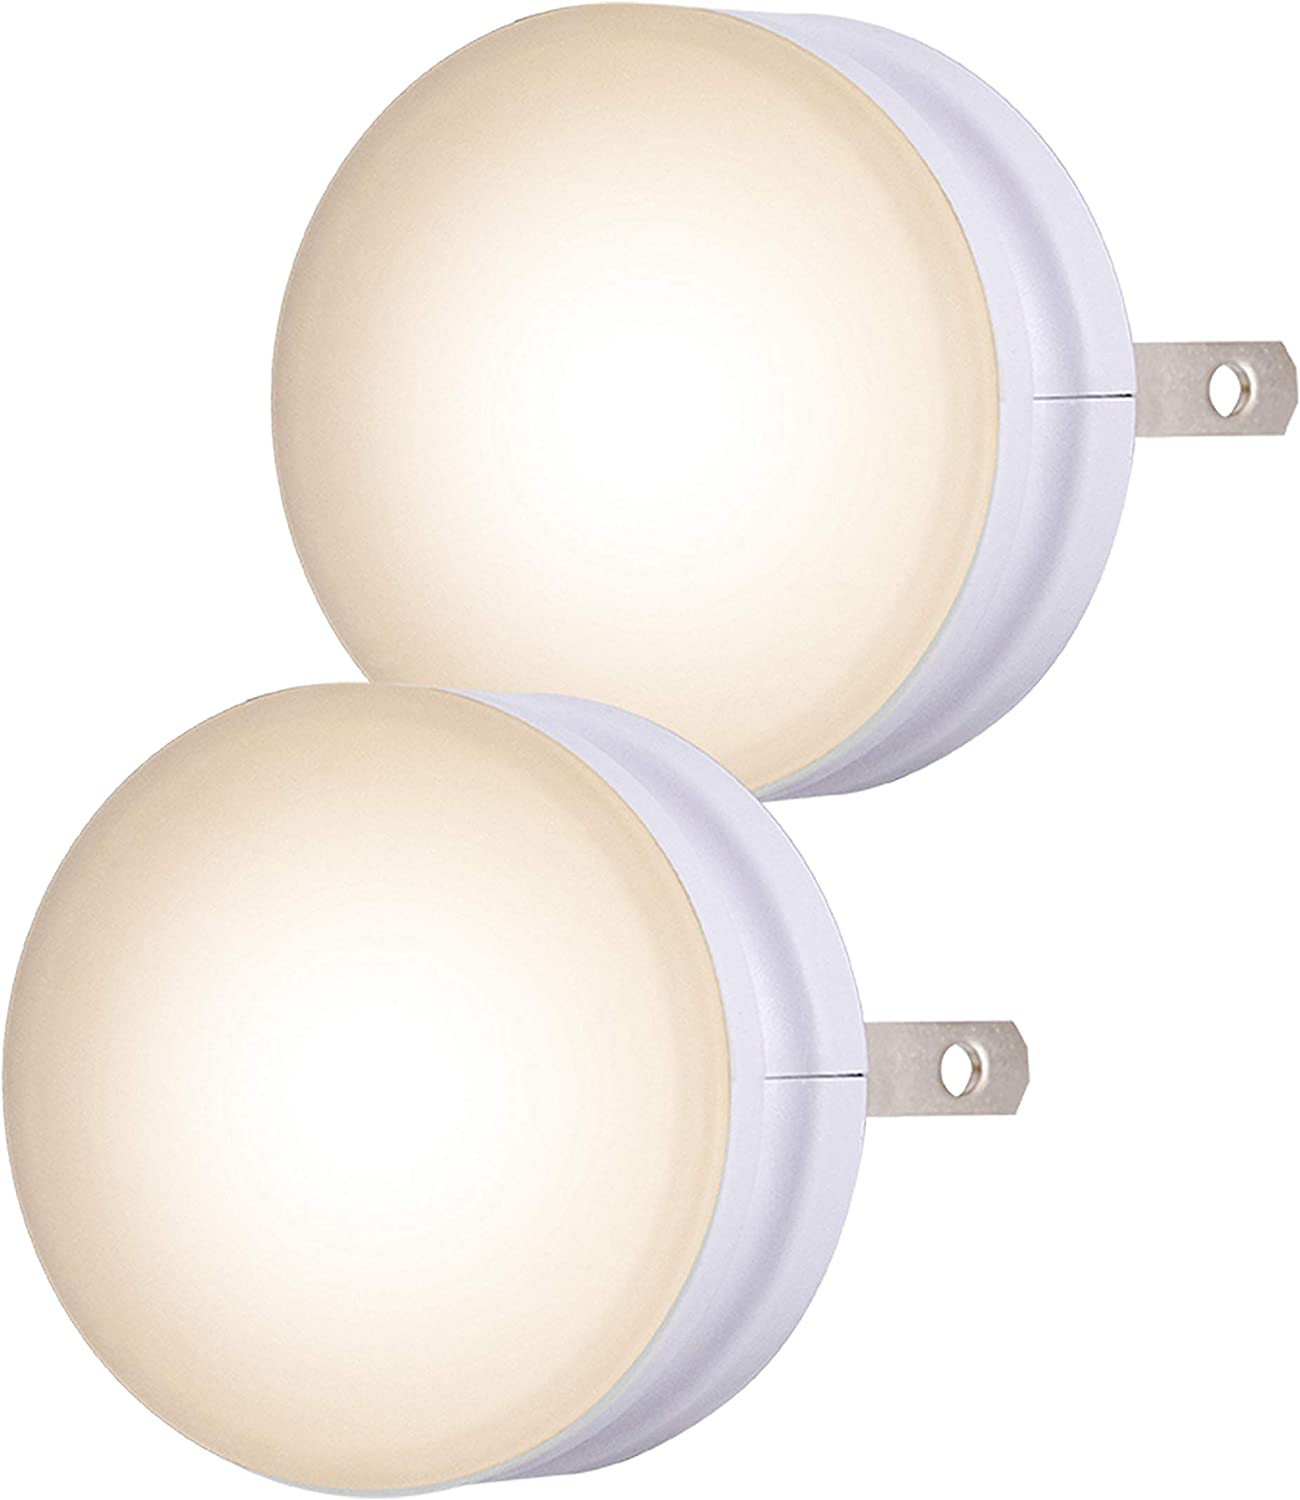 Lights by Night GLO Dot LED Night, 2 Pack, Dusk-to-Dawn Sensor, Soothing Guide Light, for Seniors, Ideal for Bedroom, Bathroom, Guest Room, Hallway, Nursery, Basement, 43950, White, 2